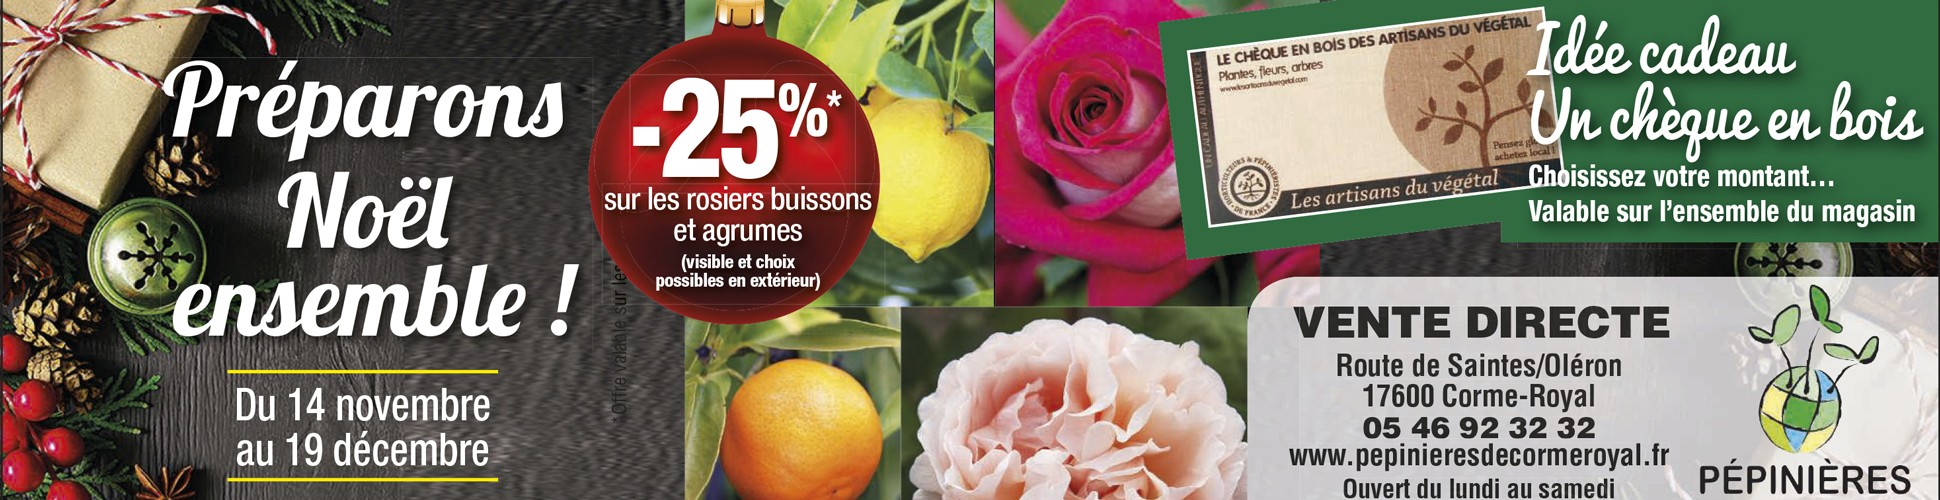 Promo Rosier buisson agrumes